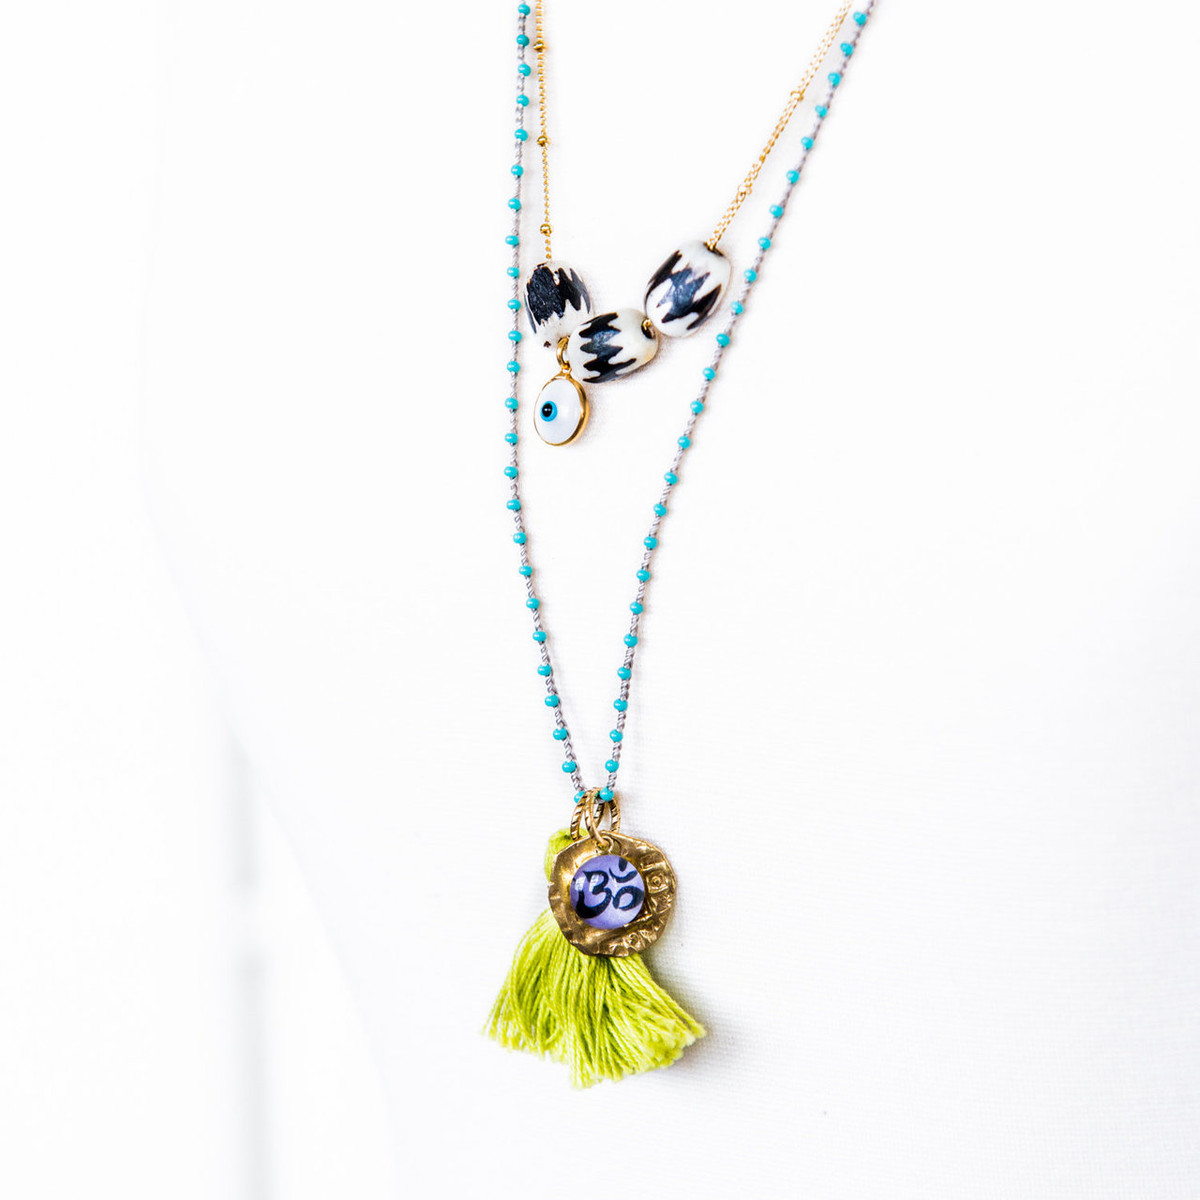 7Stitches Beaded Double chain Om Yoga Necklace